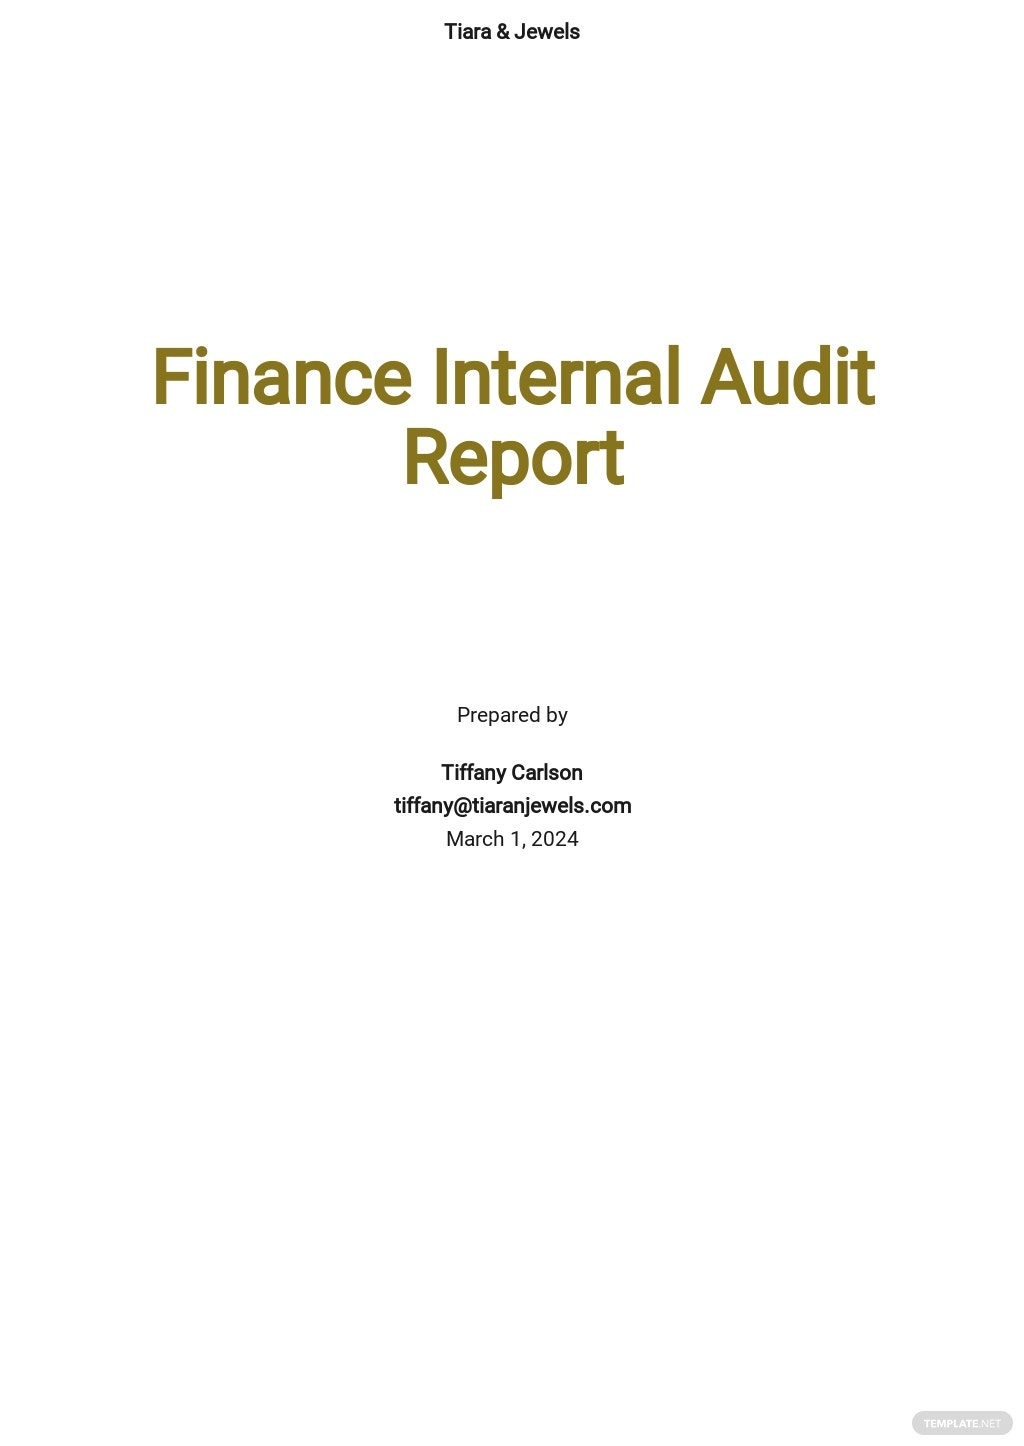 Finance Internal Audit Report Template